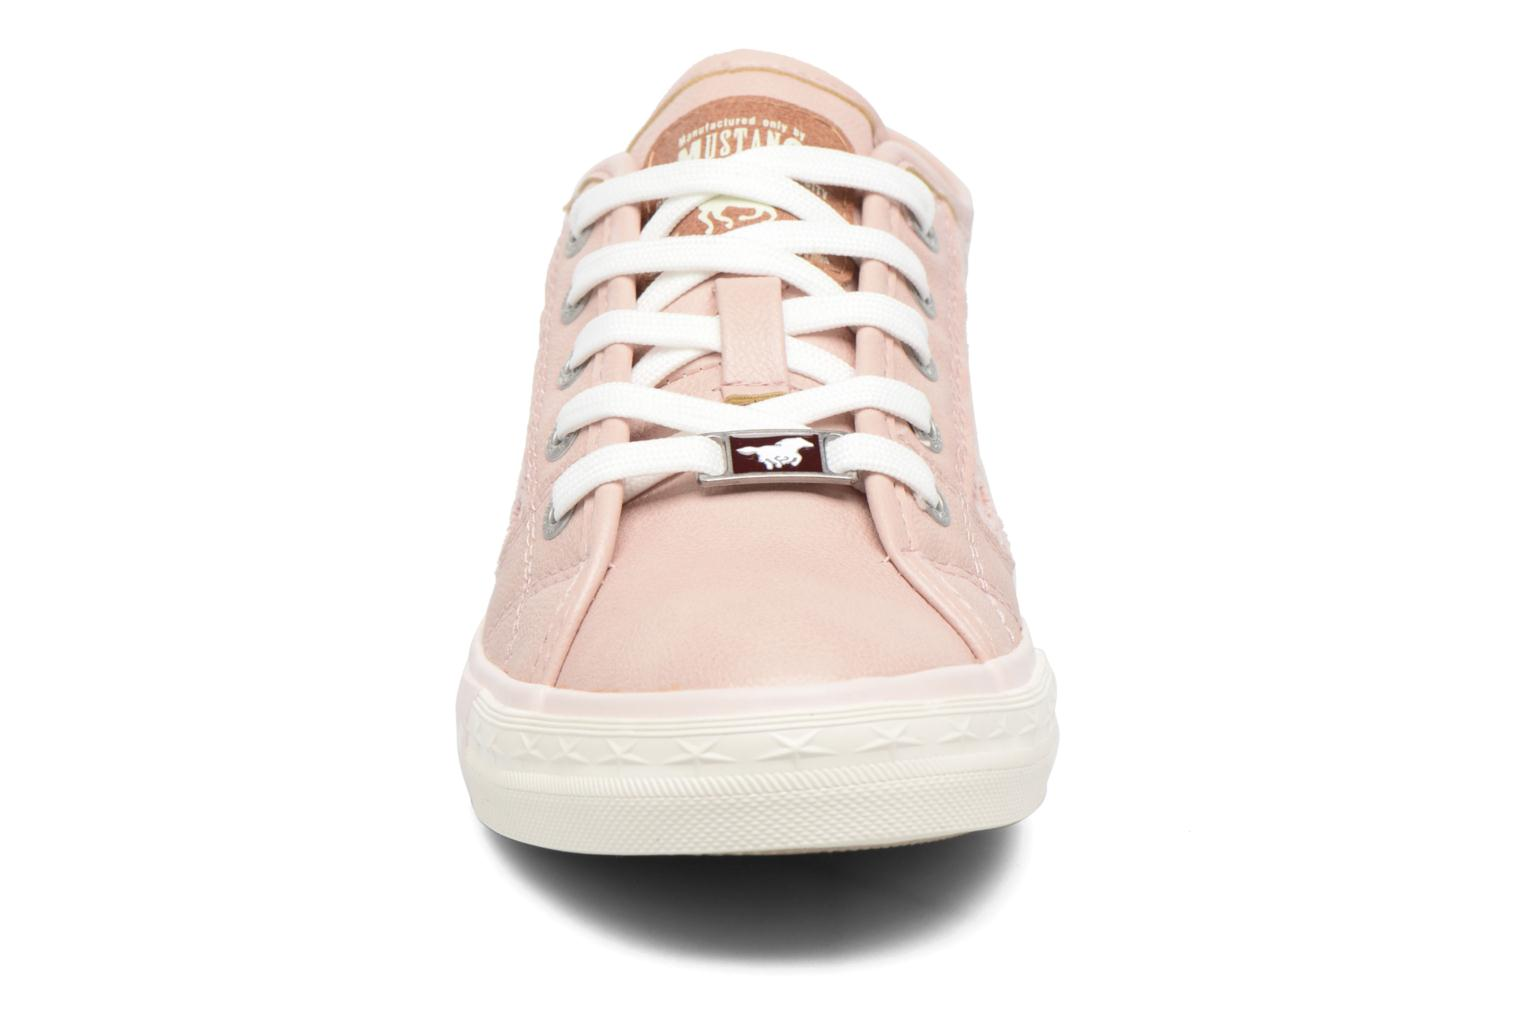 Baskets Mustang shoes Smith N Rose vue portées chaussures